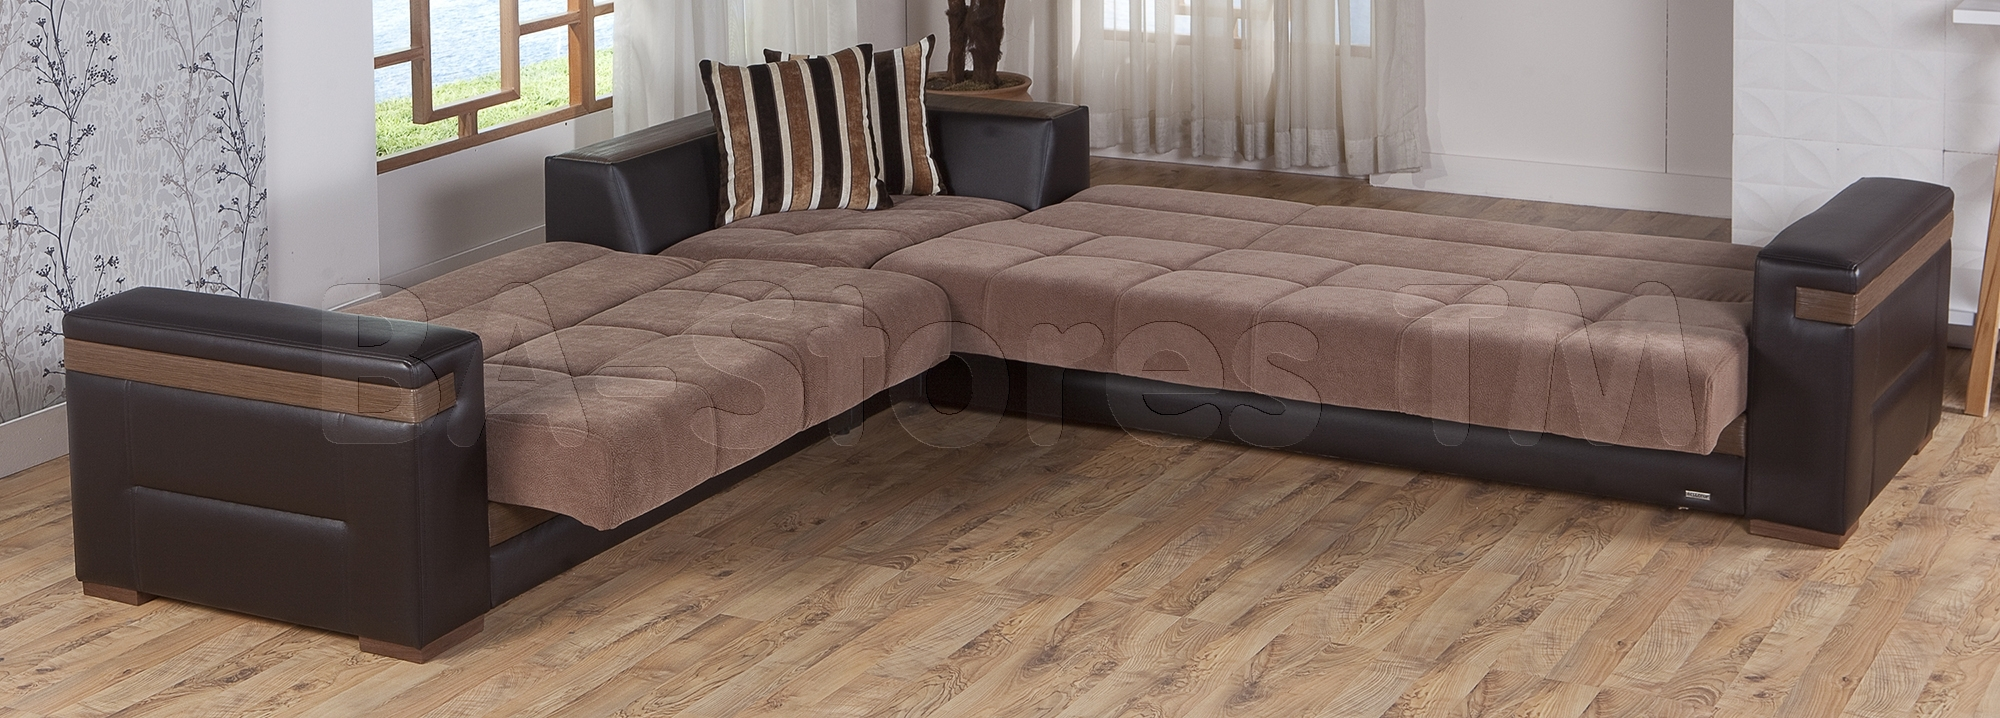 Rv Sectional Sofa | Teachfamilies for Sectional Sofas For Campers (Image 7 of 10)